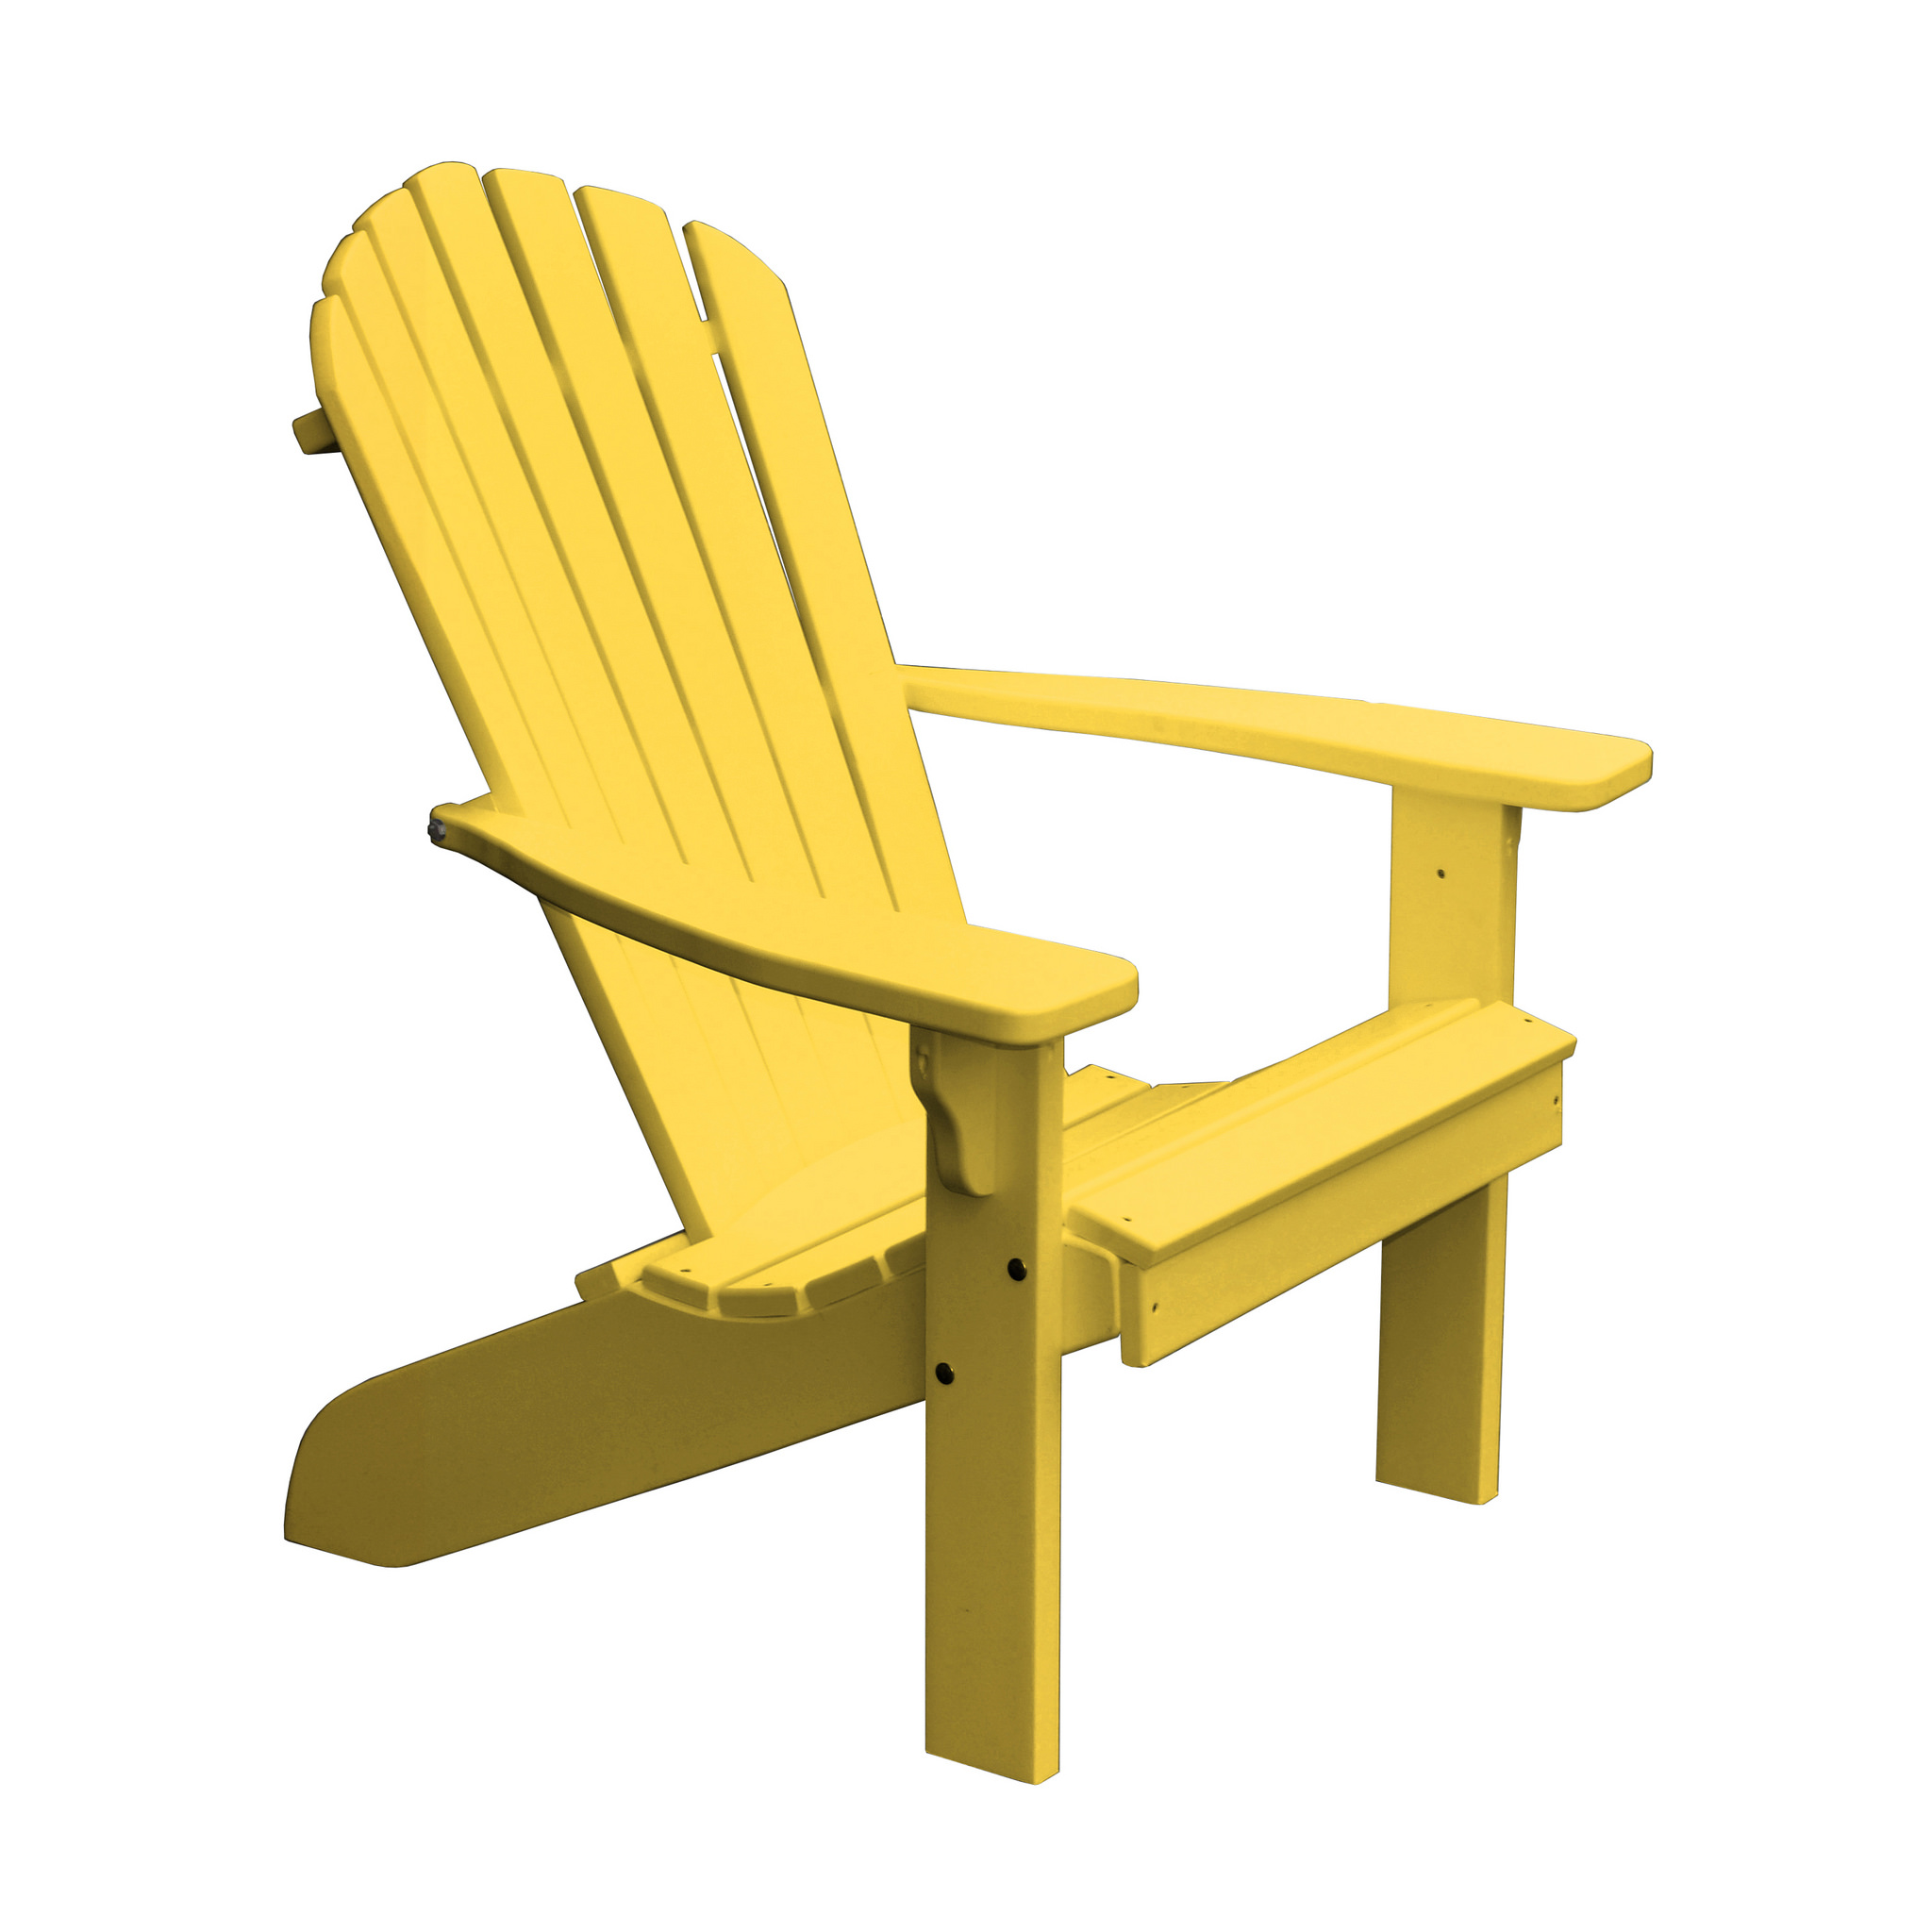 Furniture Barn USA® Poly Fan Back Adirondack Chair - Aruba Blue